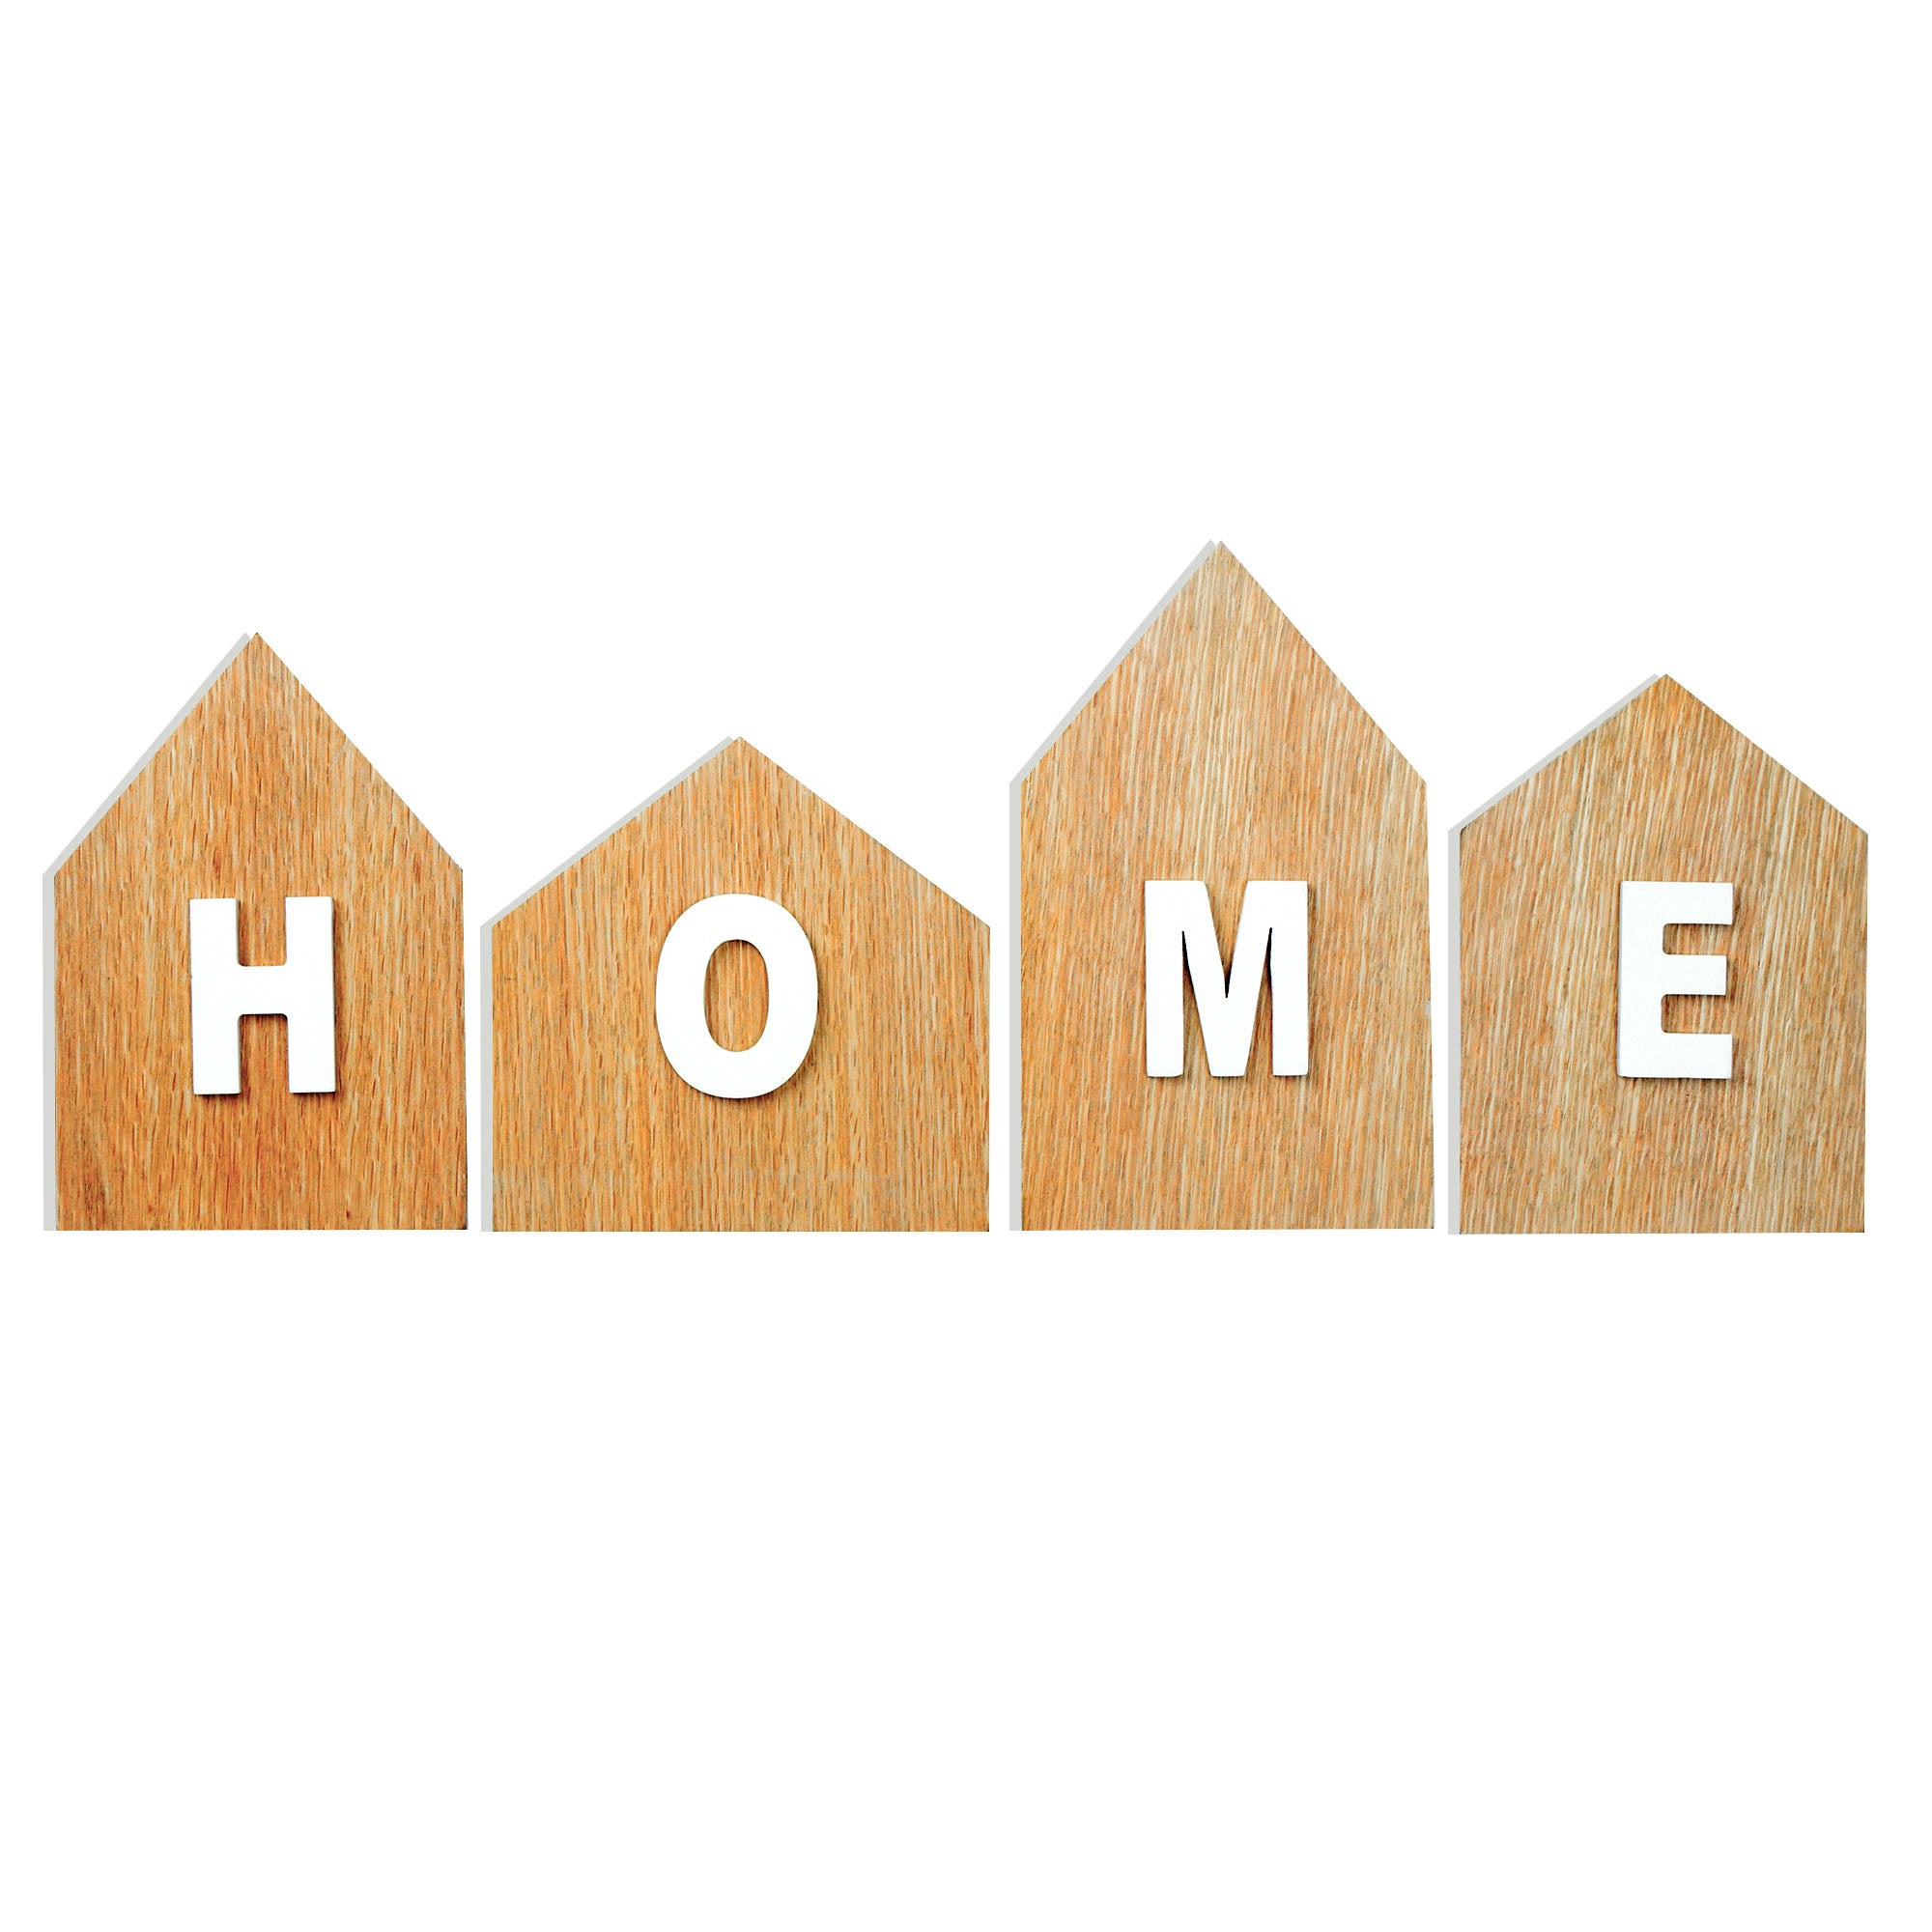 Houses Wooden Wall Art